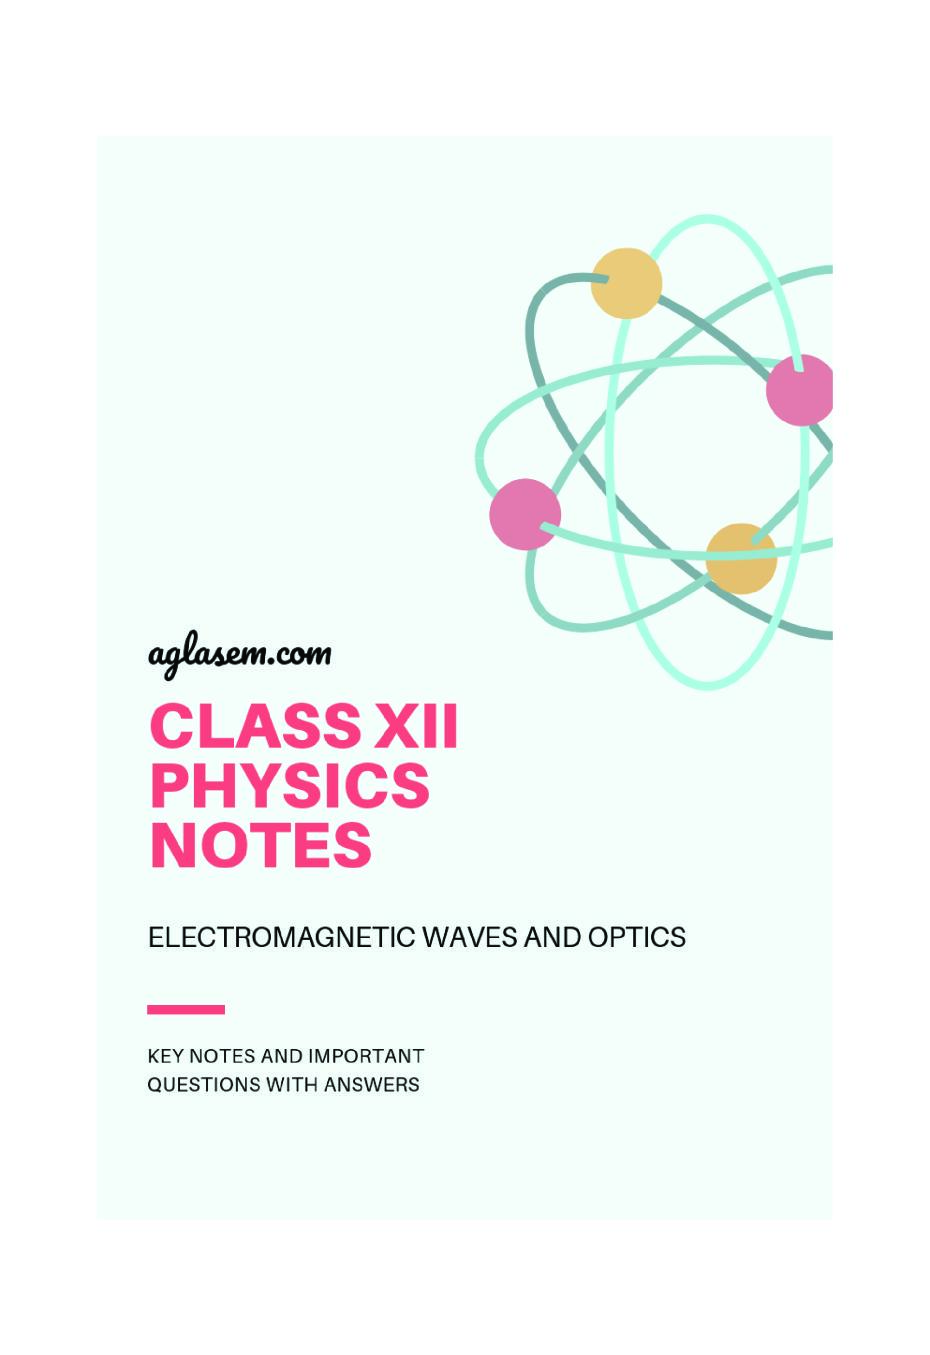 Class 12 Physics Notes for Electromagnetic Waves and Optics